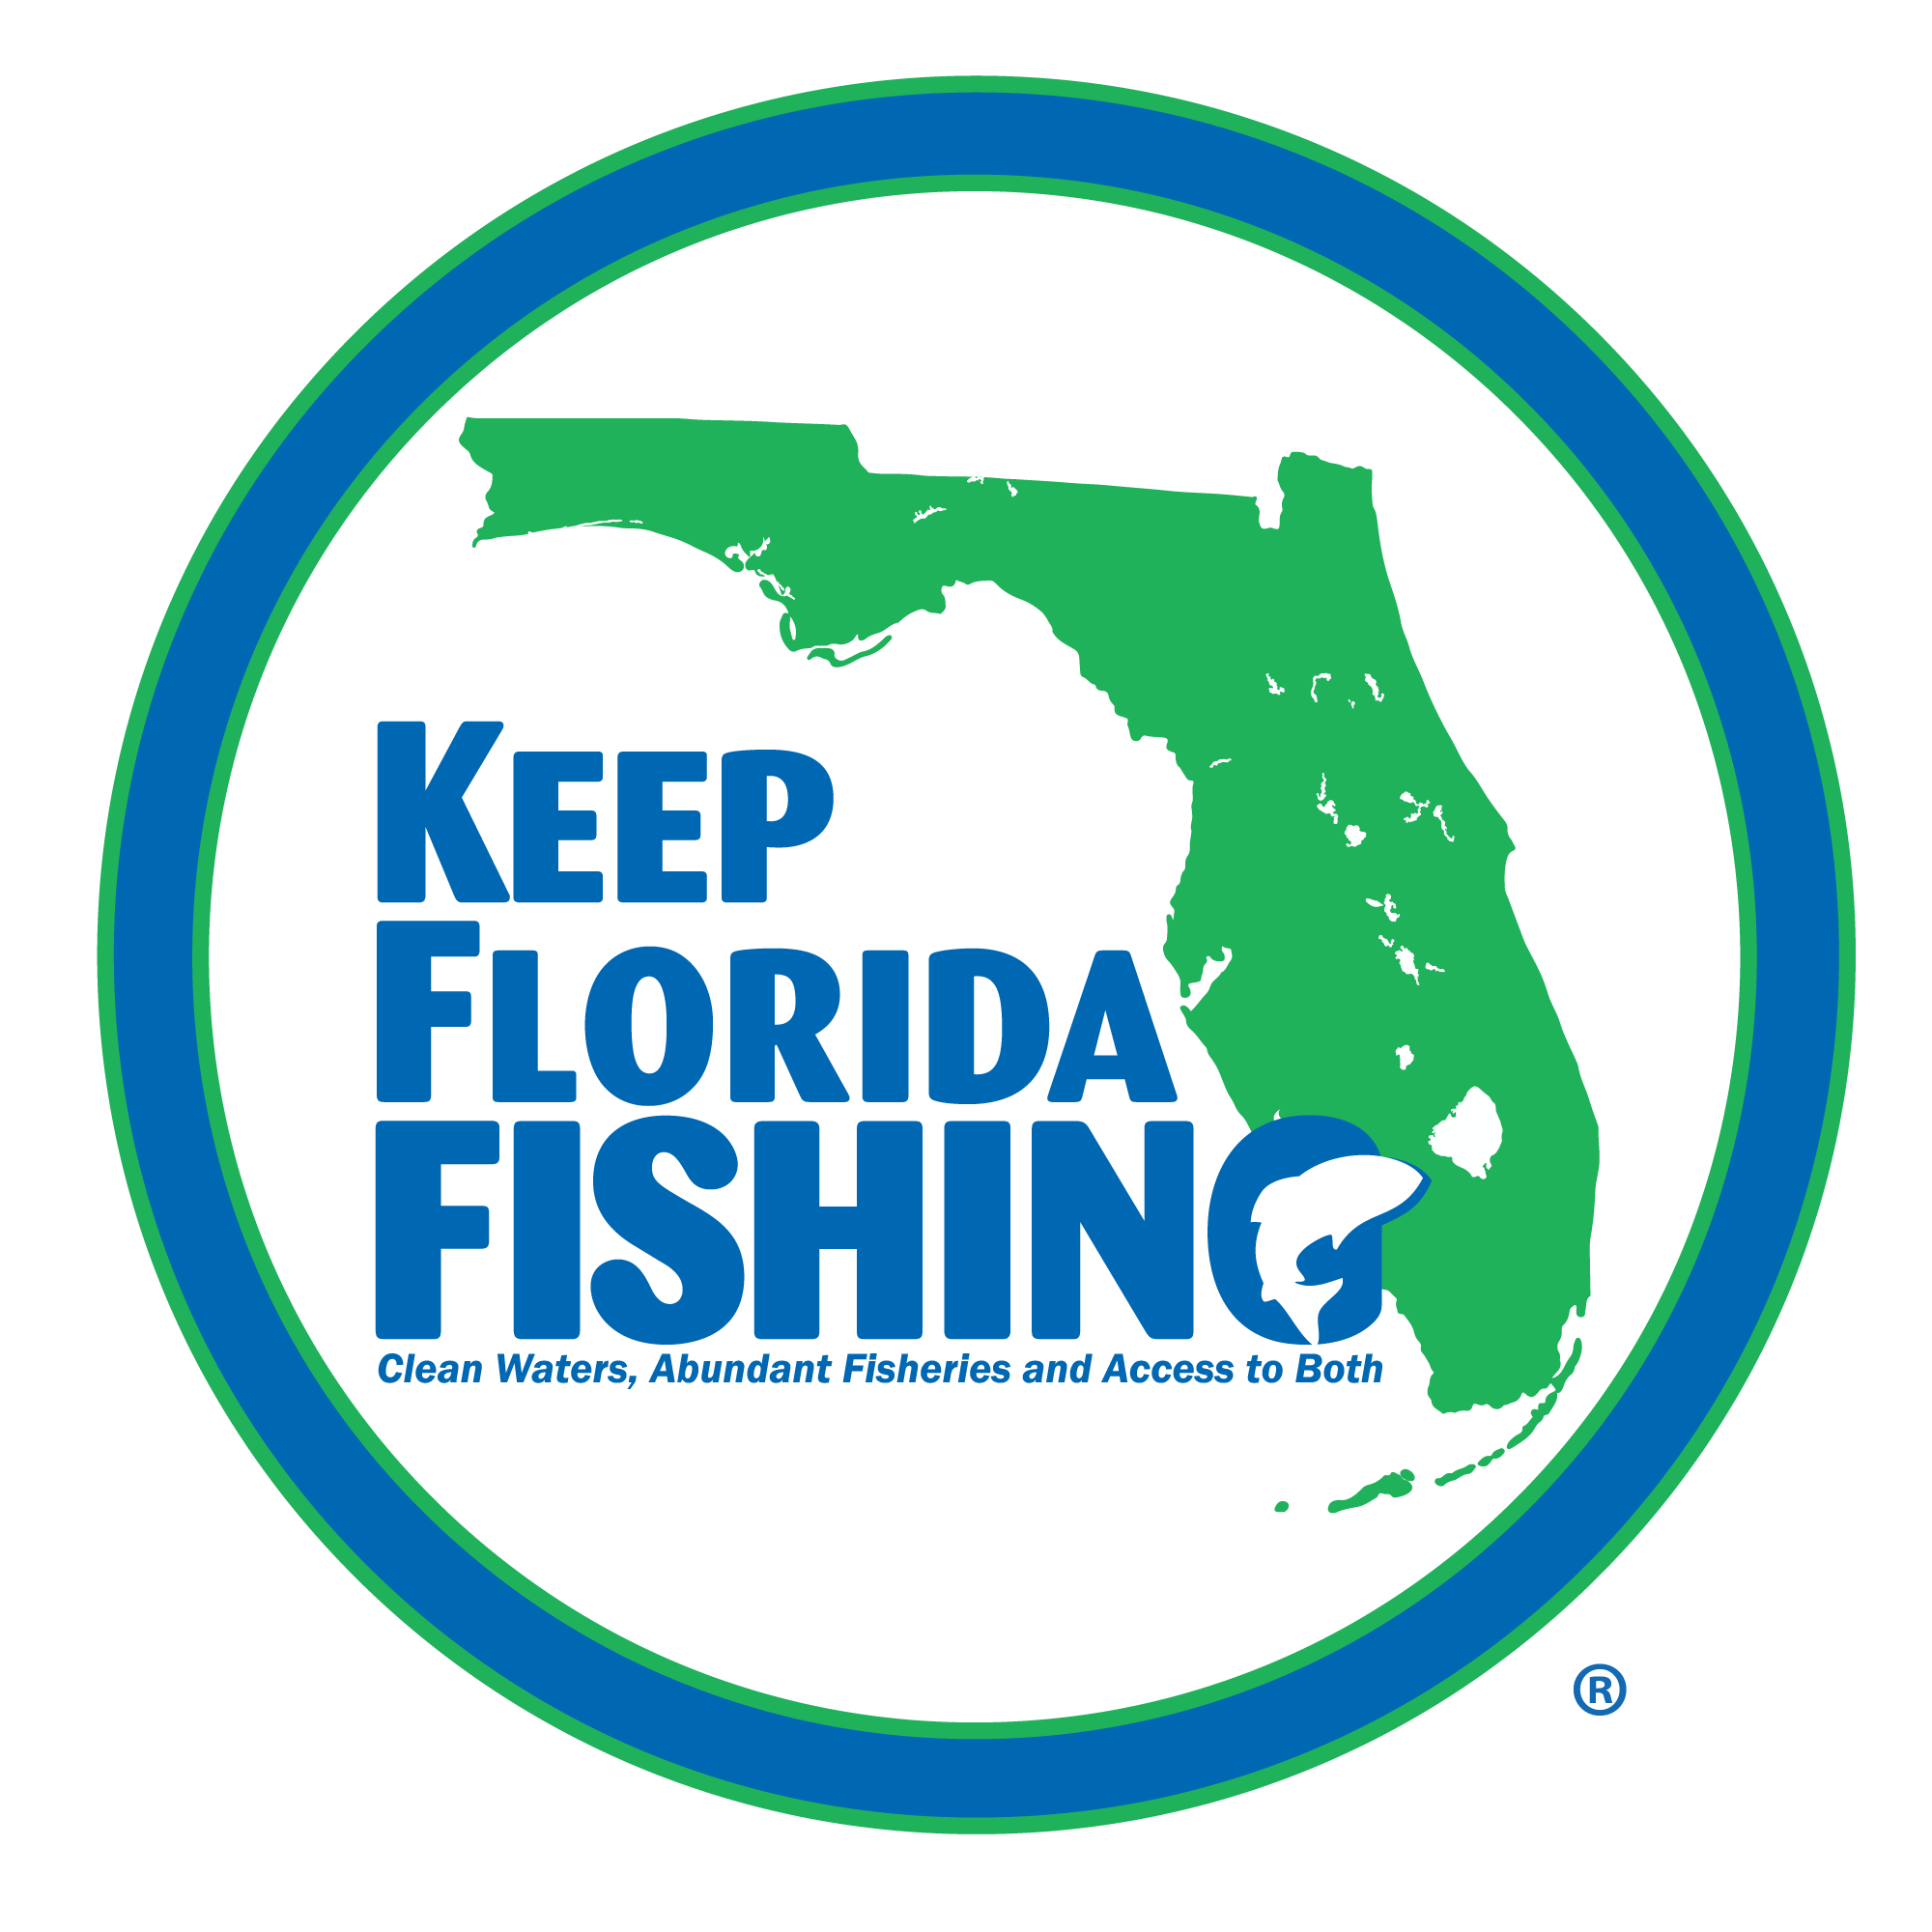 Keep Florida Fishing logo